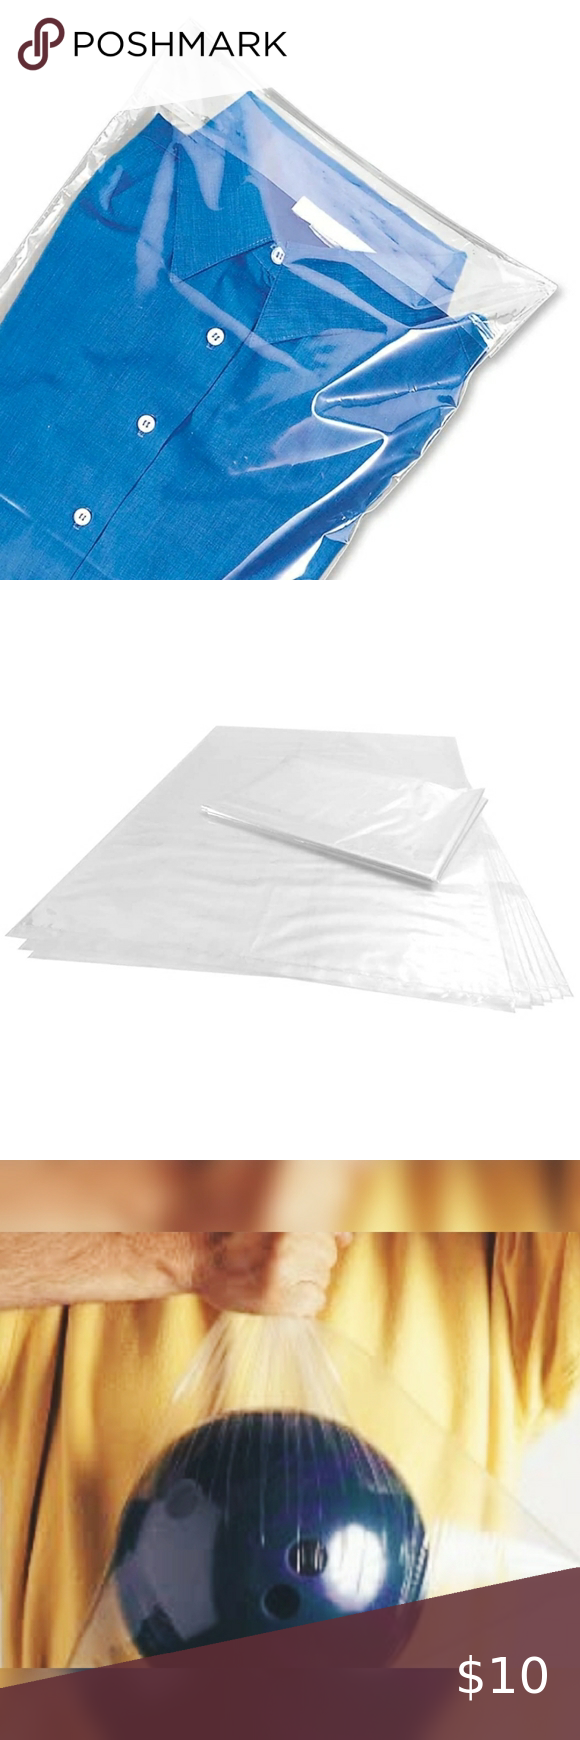 10 Clear Plastic Flat Open Bags In 2020 Soap Making Supplies Clear Plastic Bags Things To Sell